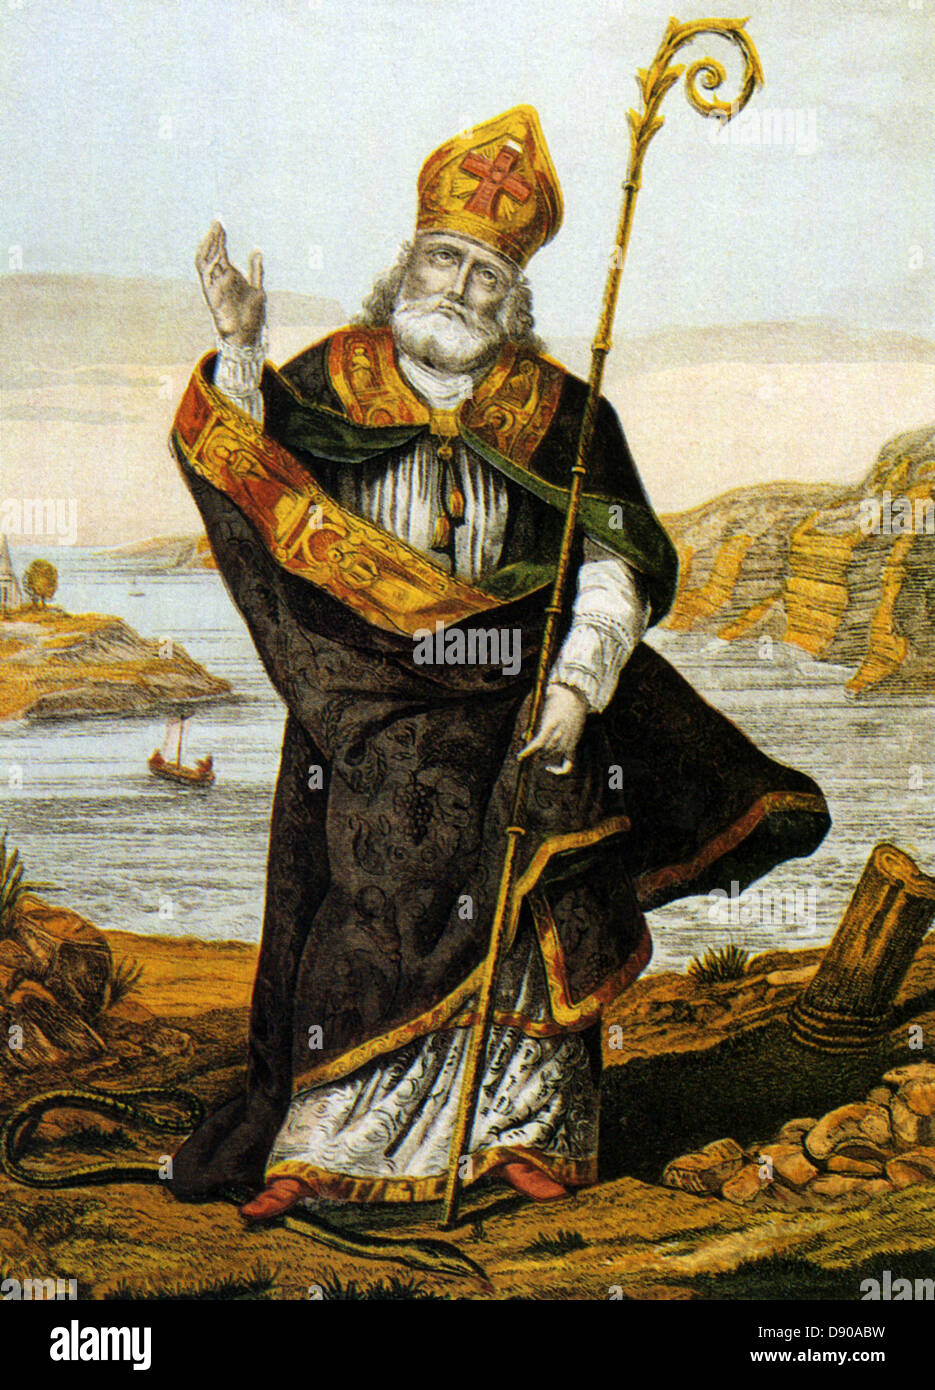 st patrick c 387 460 romano british christian missionary in an